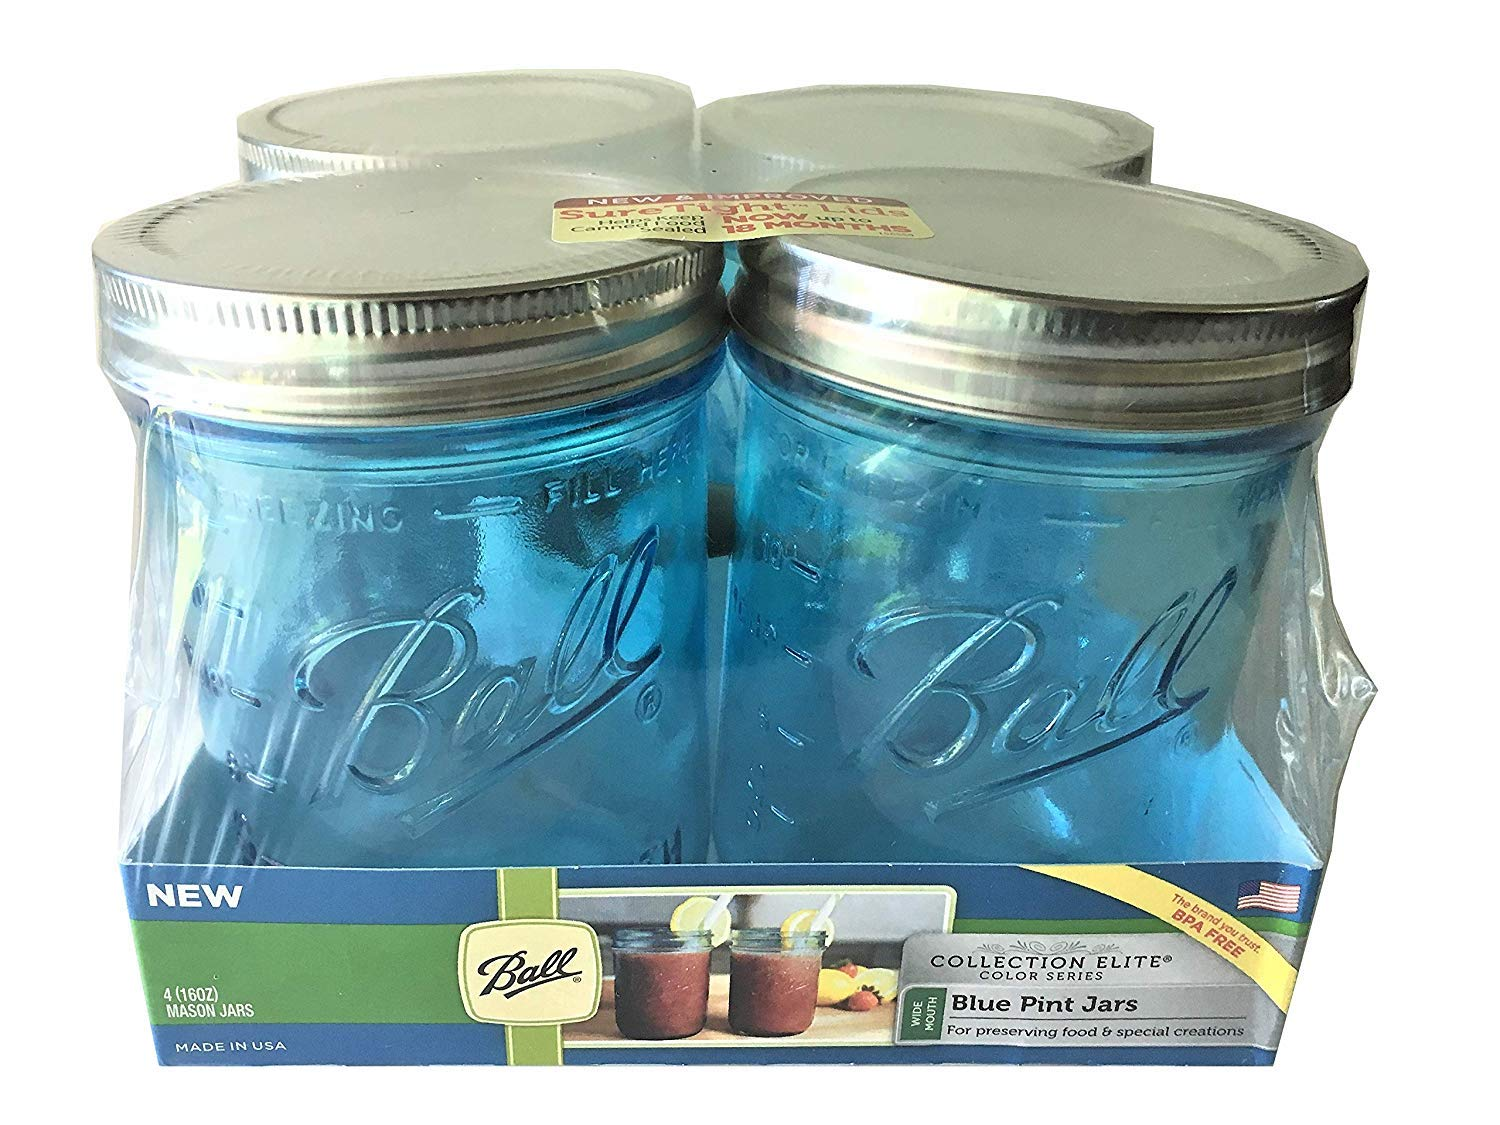 Ball Pint Size Wide Mouth Canning Jars | 16-oz | Collection Elite Series | Blue (4-Pack)